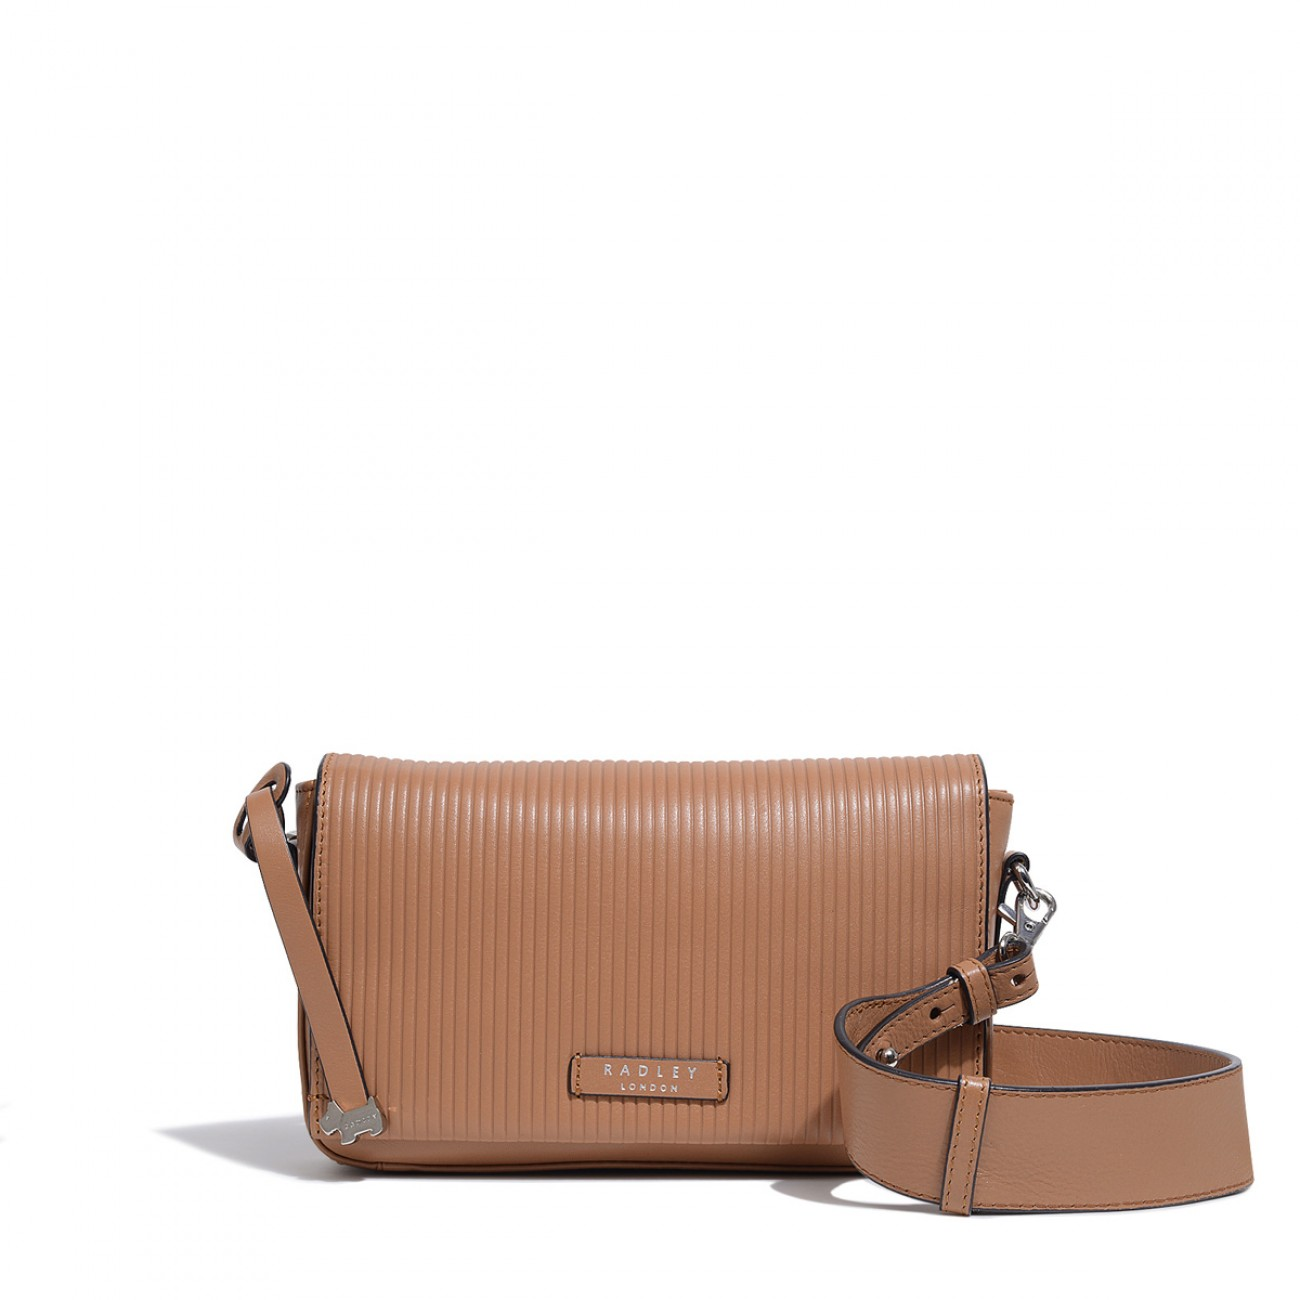 Hanson Street Medium Flapover Cross Body Bag